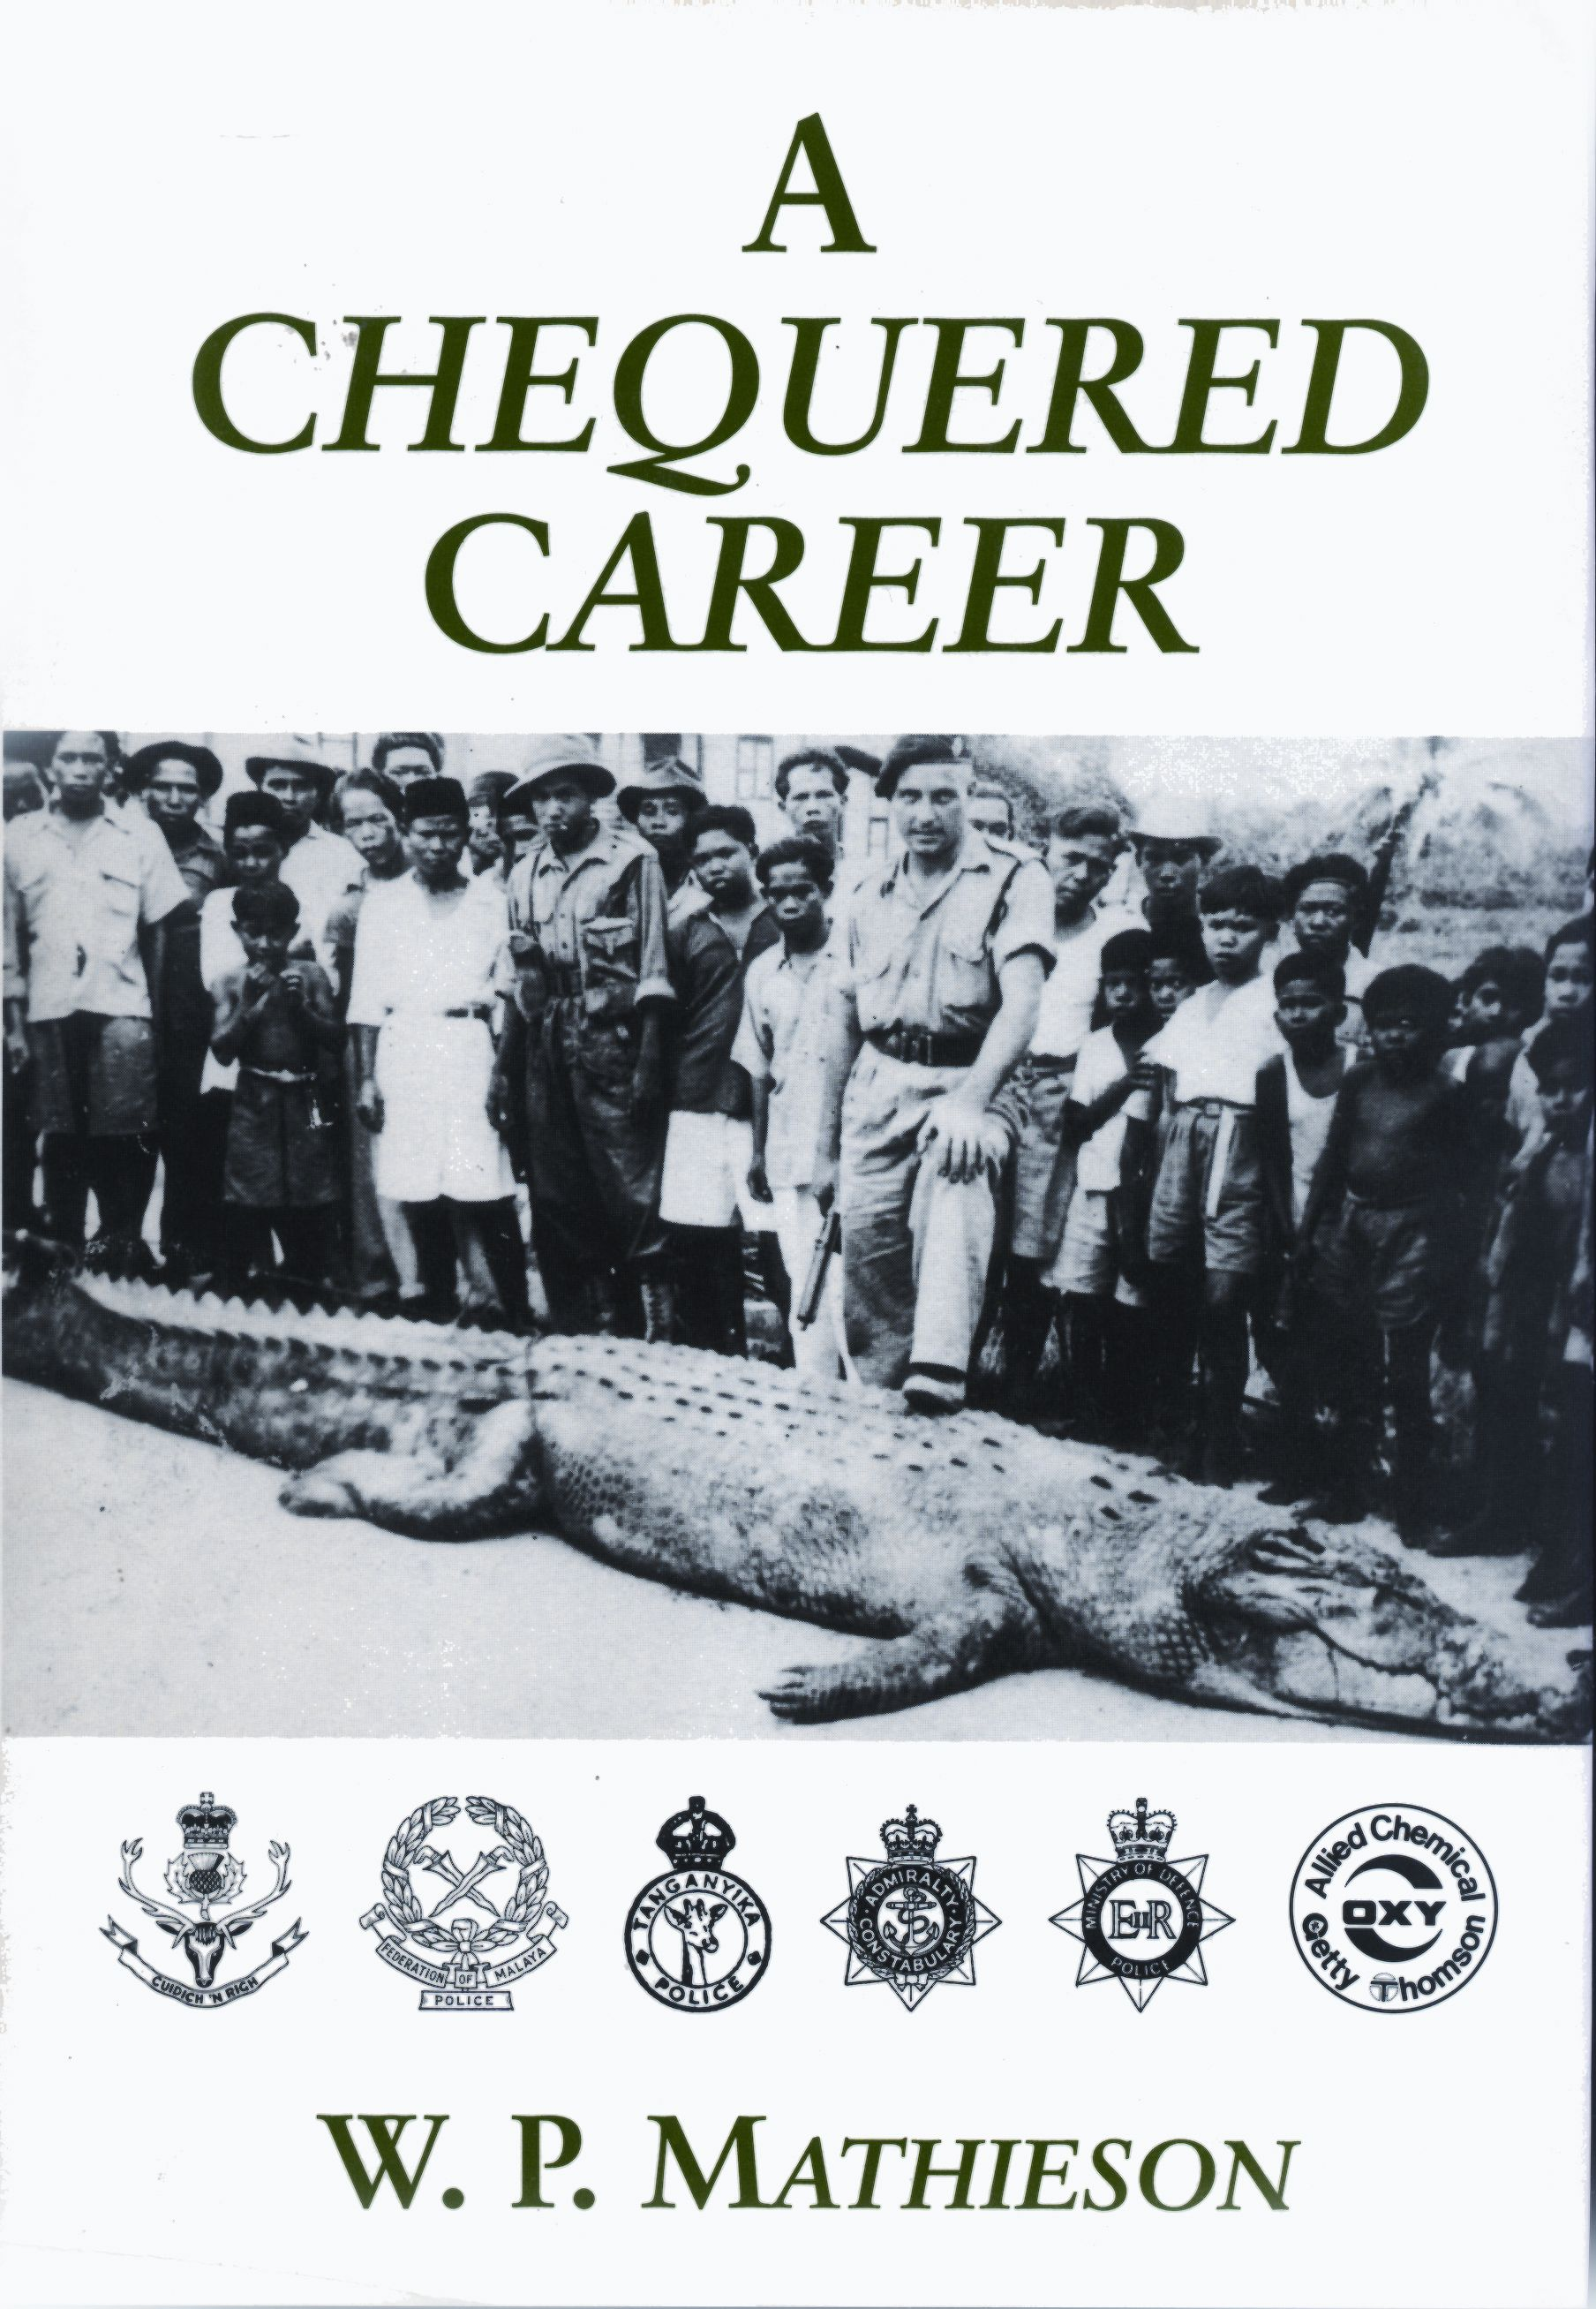 A Chequered Career